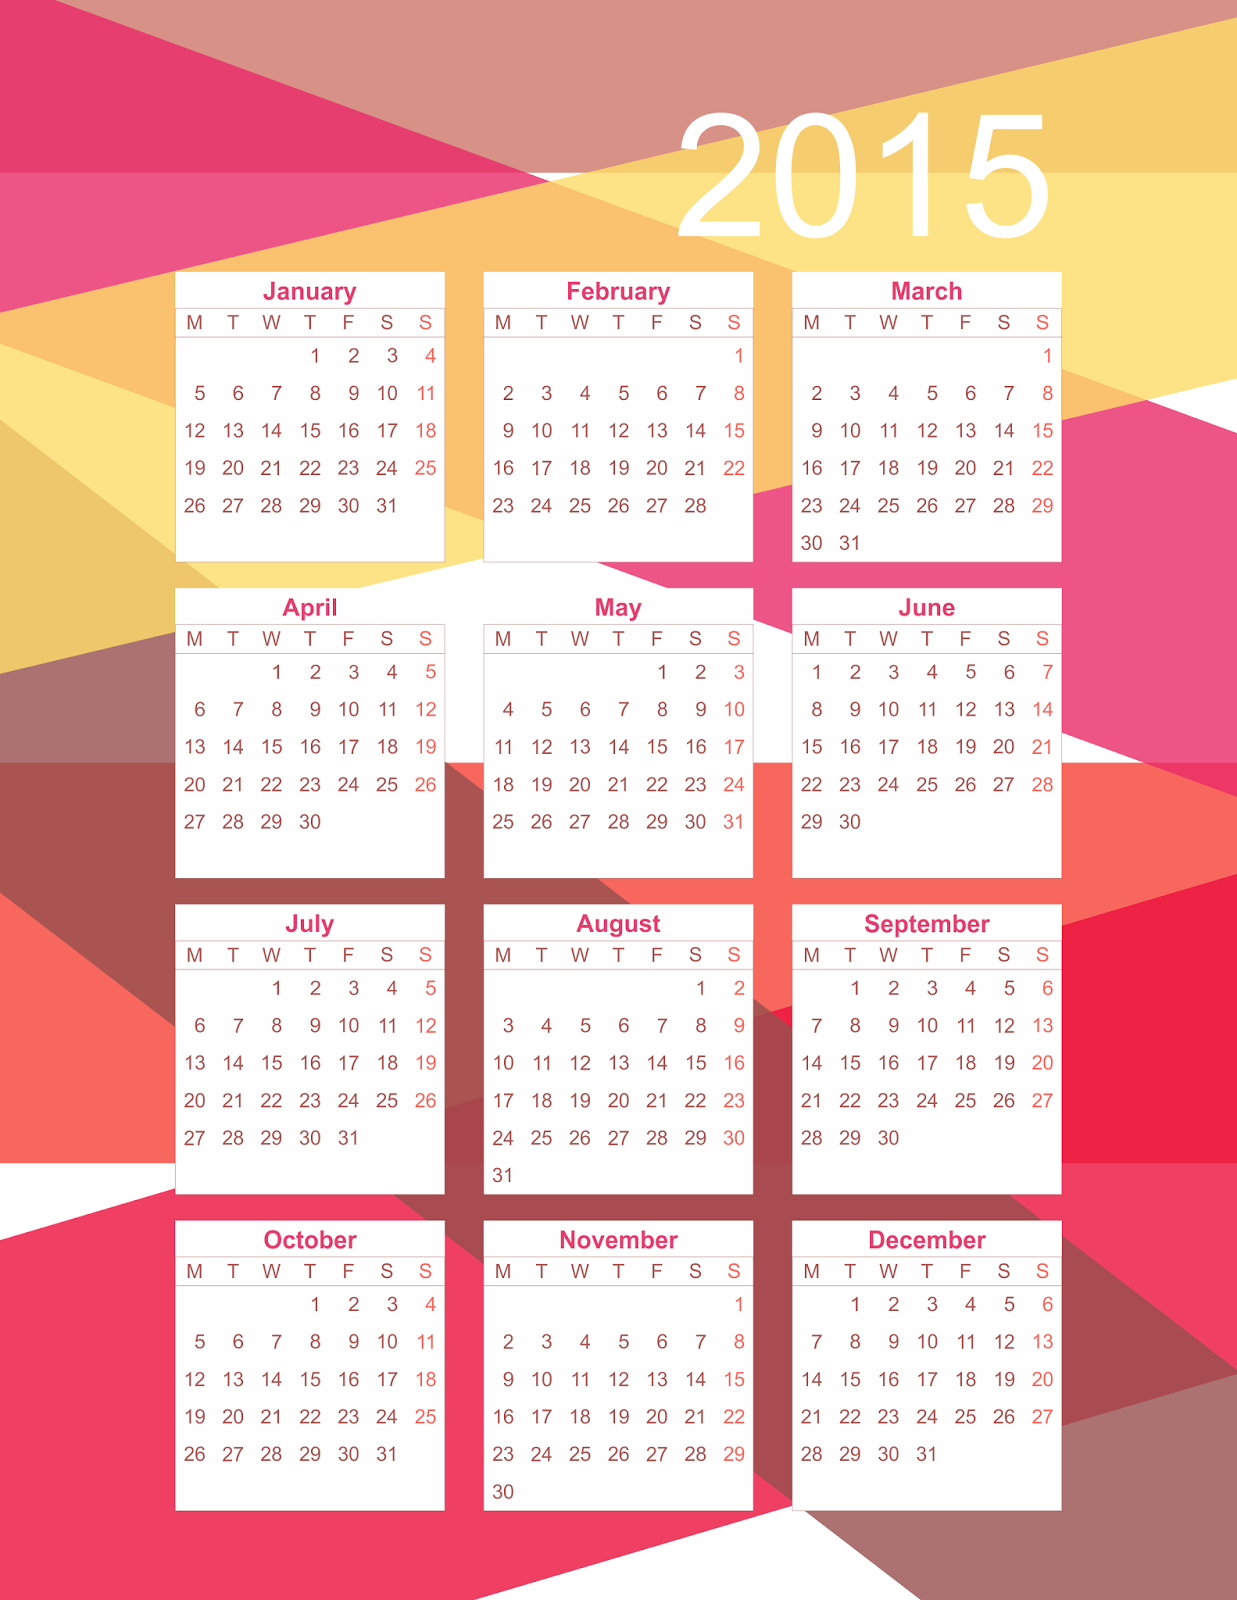 labels calendar 2015 freebie calendar 2015 pdf file free calendar 2015 free download